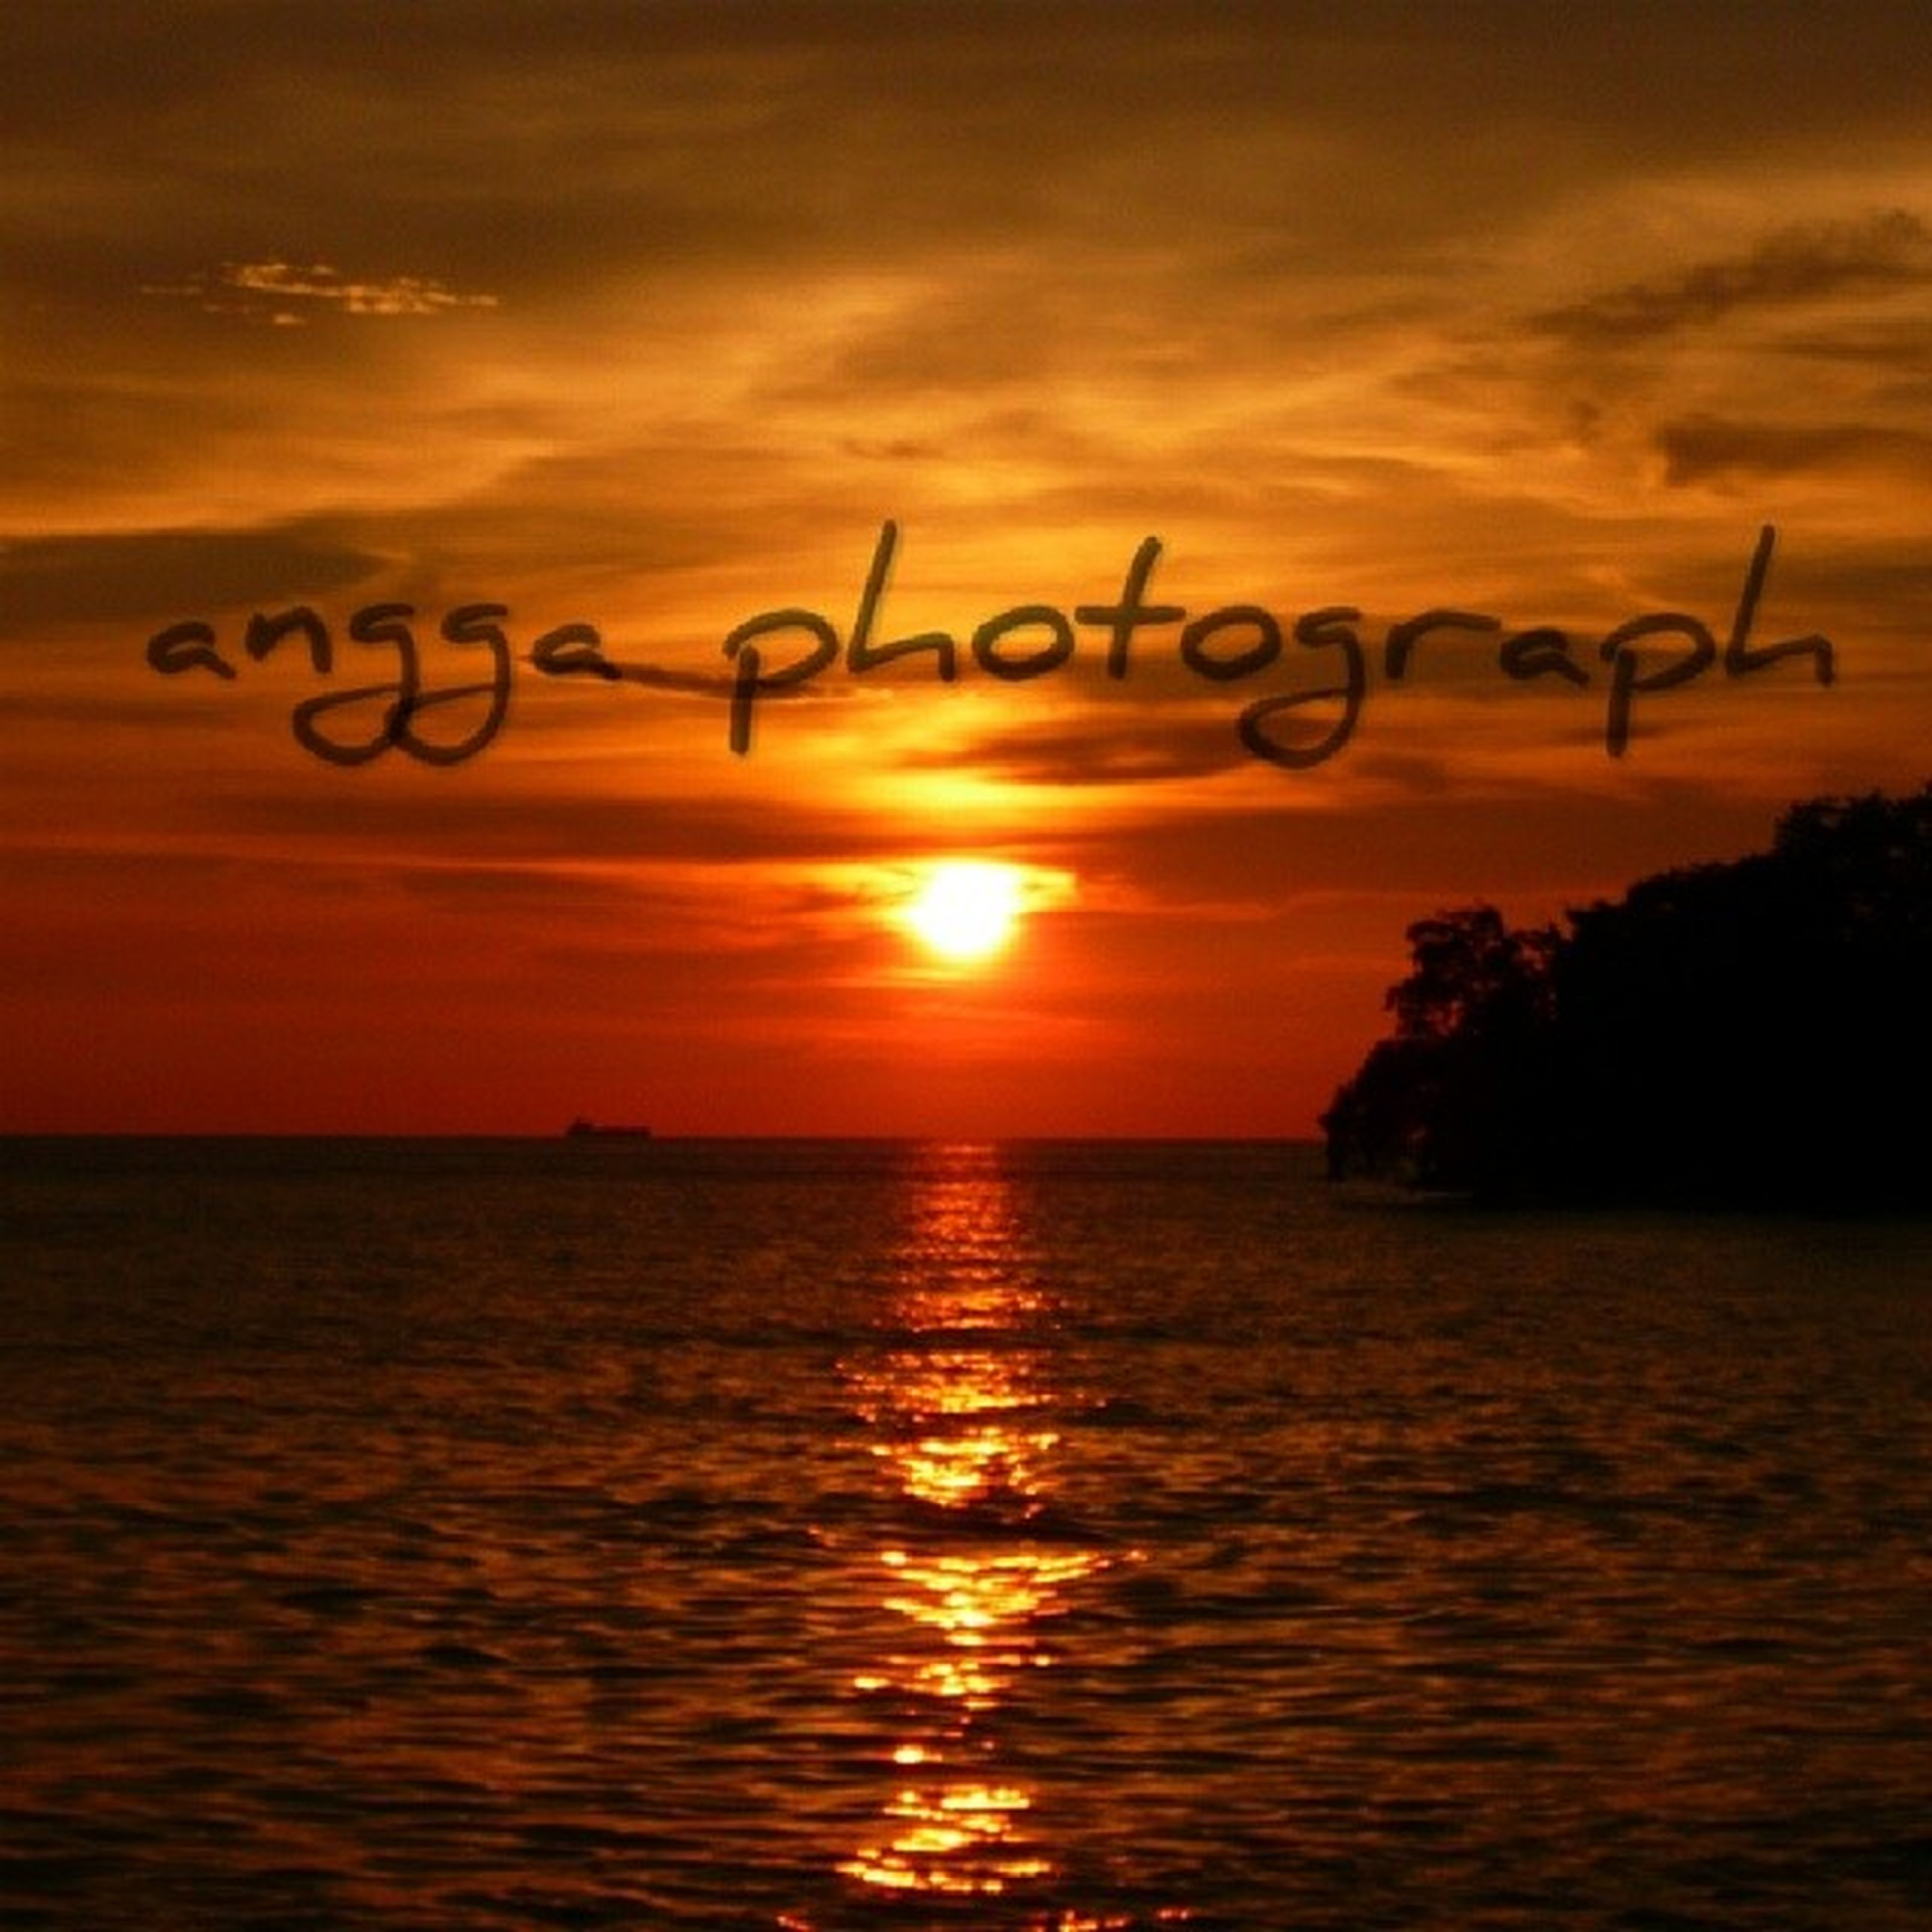 sunset, water, orange color, sun, sea, scenics, sky, tranquility, waterfront, tranquil scene, silhouette, beauty in nature, horizon over water, idyllic, rippled, nature, reflection, sunlight, outdoors, remote